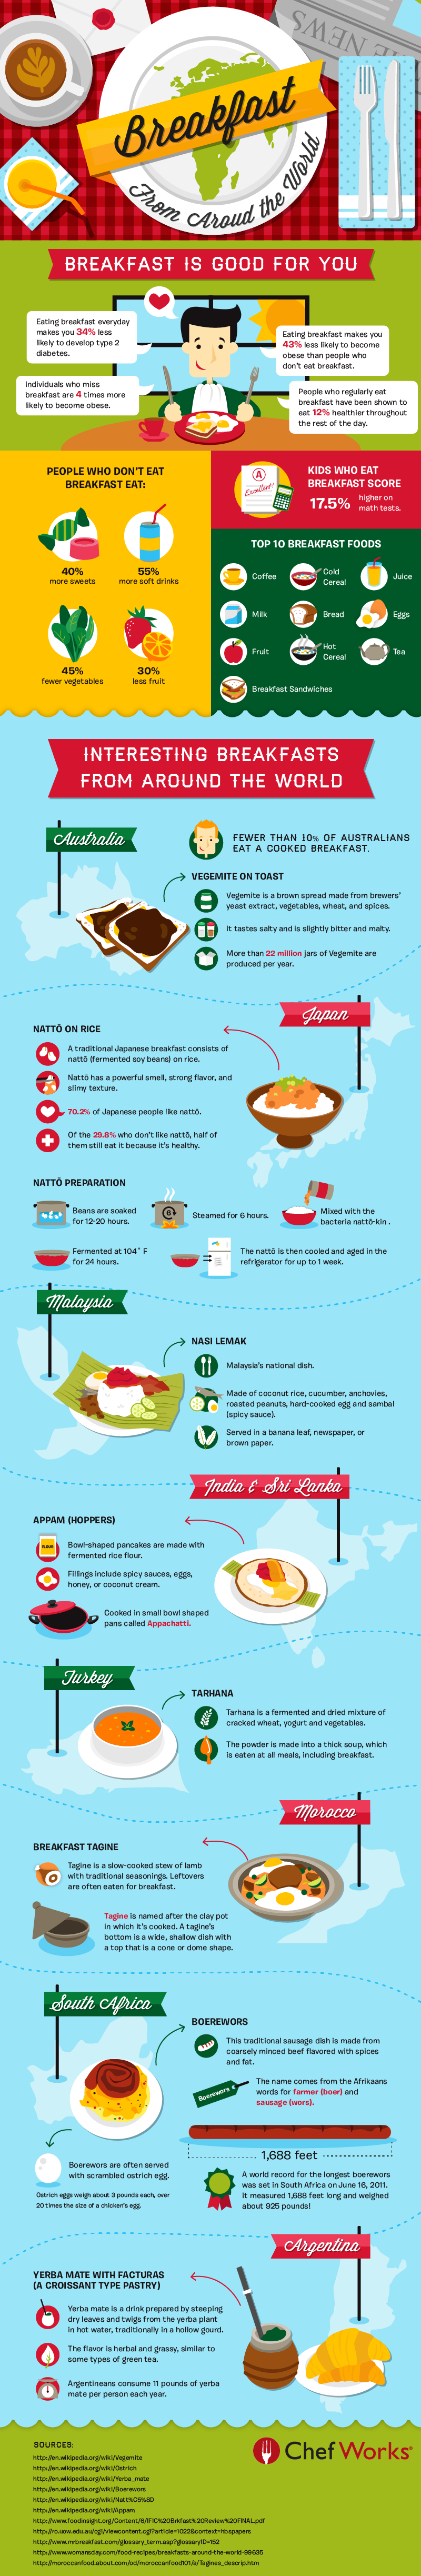 Breakfasts-from-around-the-world-infographic800